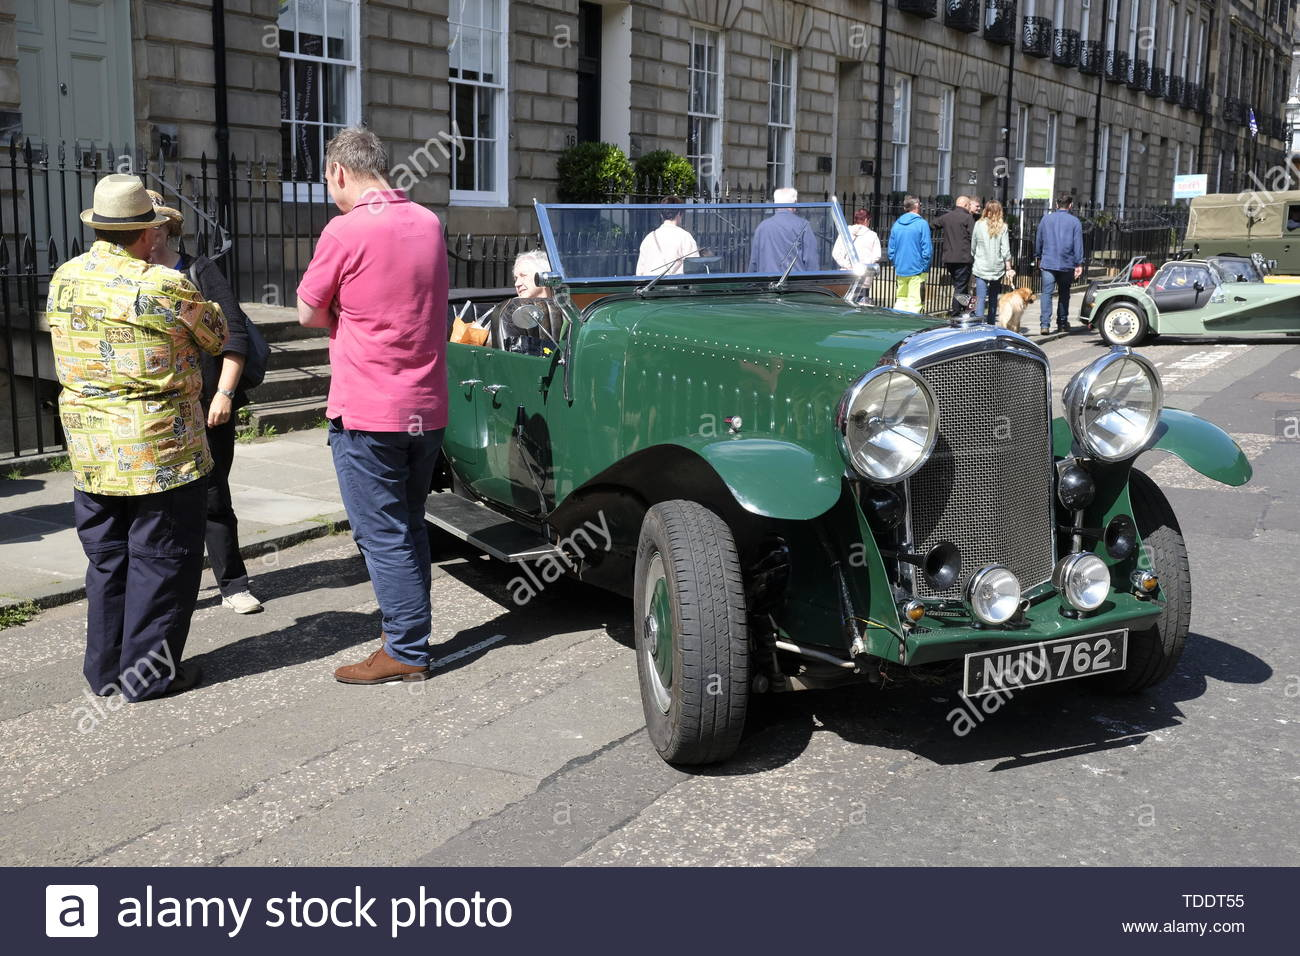 Classic Bentley car from 1920s on display at the West End Classic Vehicle event in Edinburgh, Scotland - Stock Image